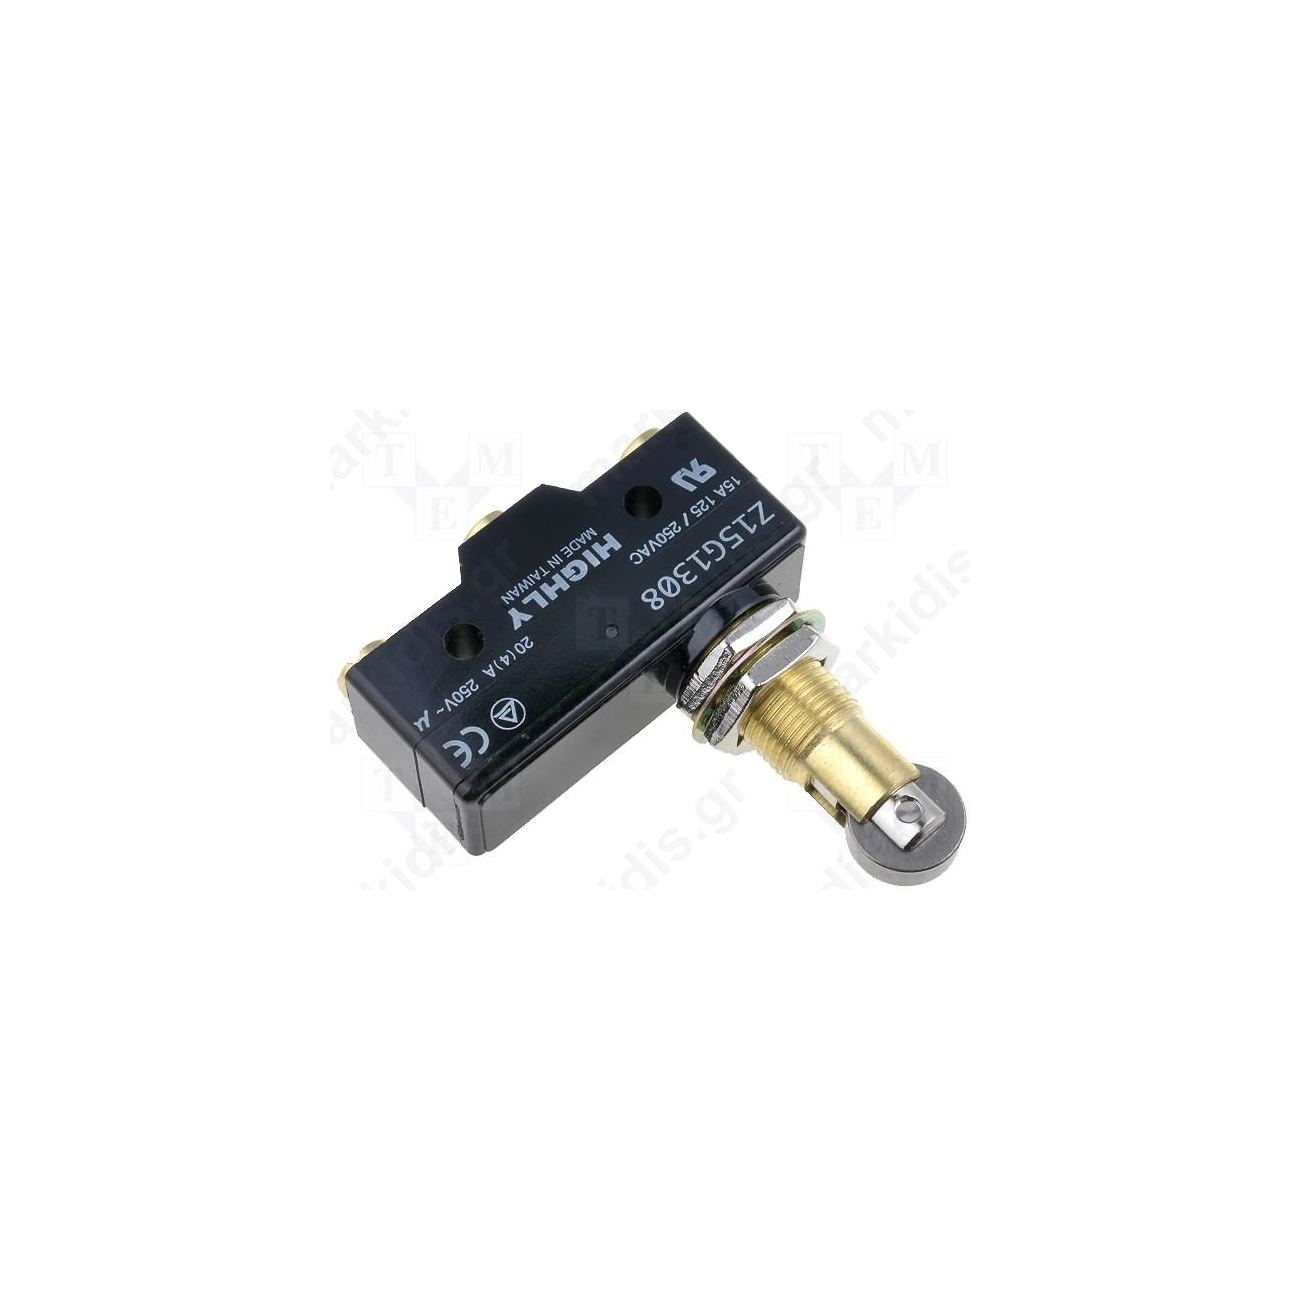 Z15g1703 Microswitch With Lever Roller Spdt 15a 250vac On Micro Switch